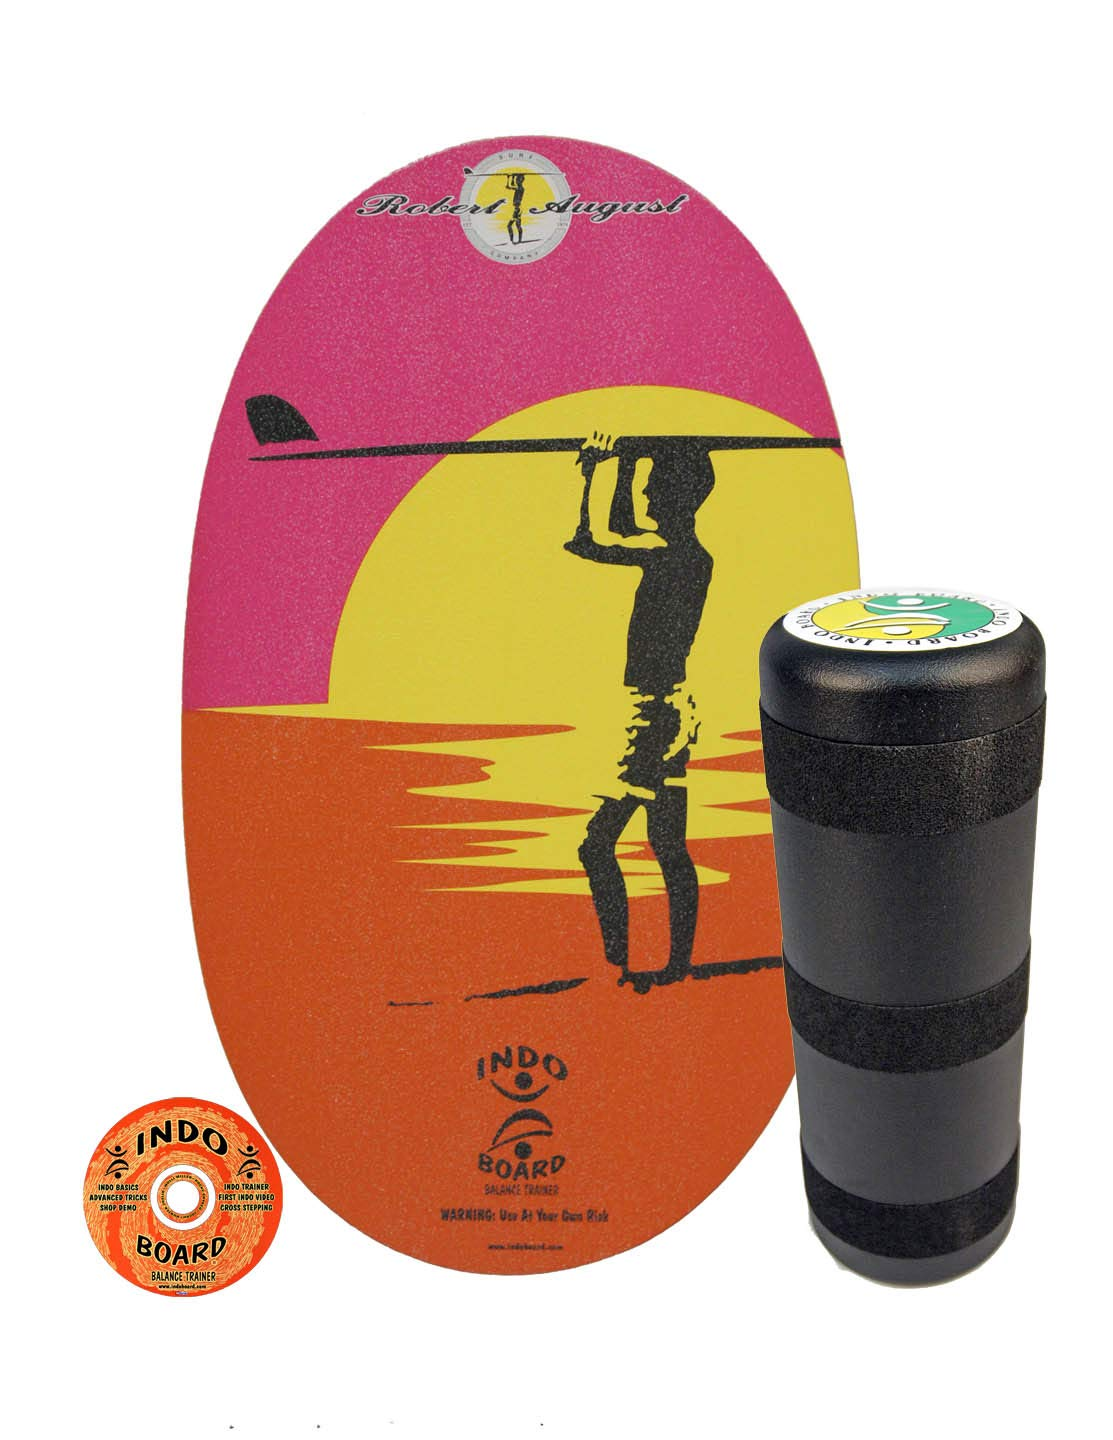 INDO BOARD Original Balance Board for Fun, Challenging Fitness. Comes with 30'' X 18'' Non-Slip Deck, 6.5'' Roller and 11 Color Choices (Robert August)